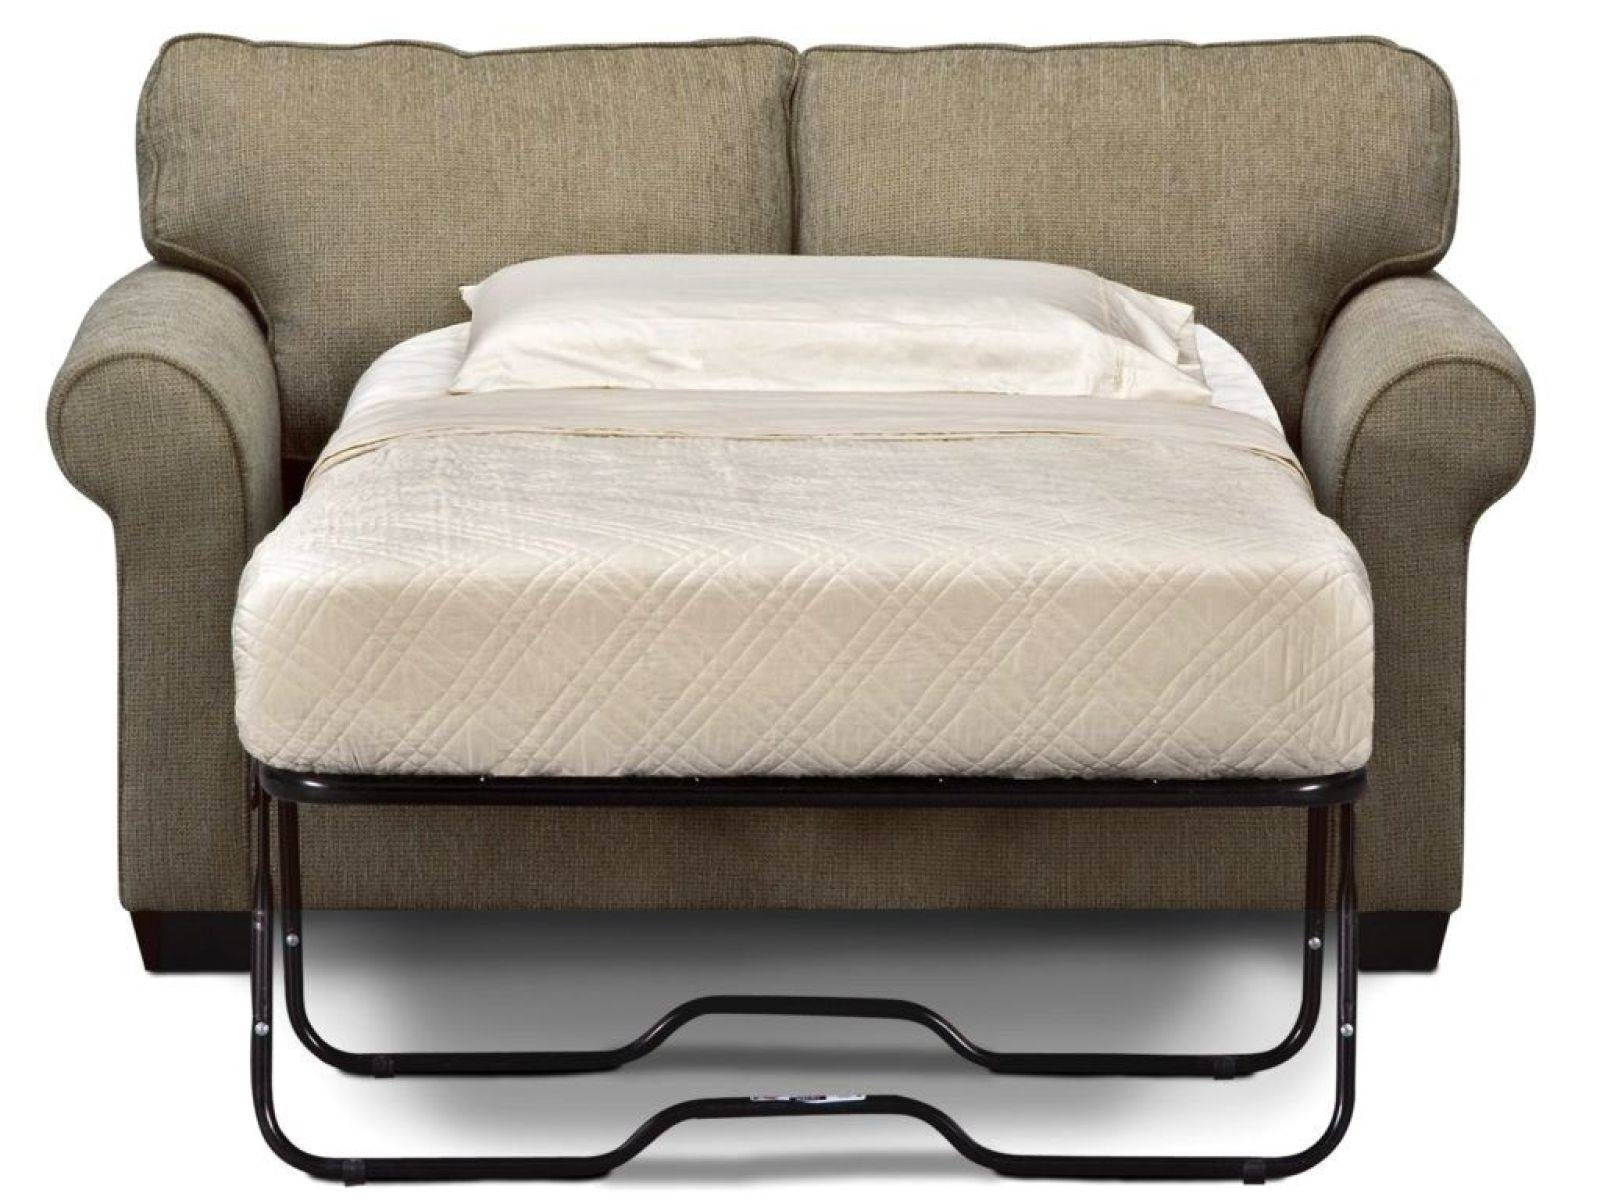 ▻ Sofa : 33 Convertible Bunk Bed Couch For Sale Convertible Couch regarding Full Size Sofa Beds (Image 15 of 15)